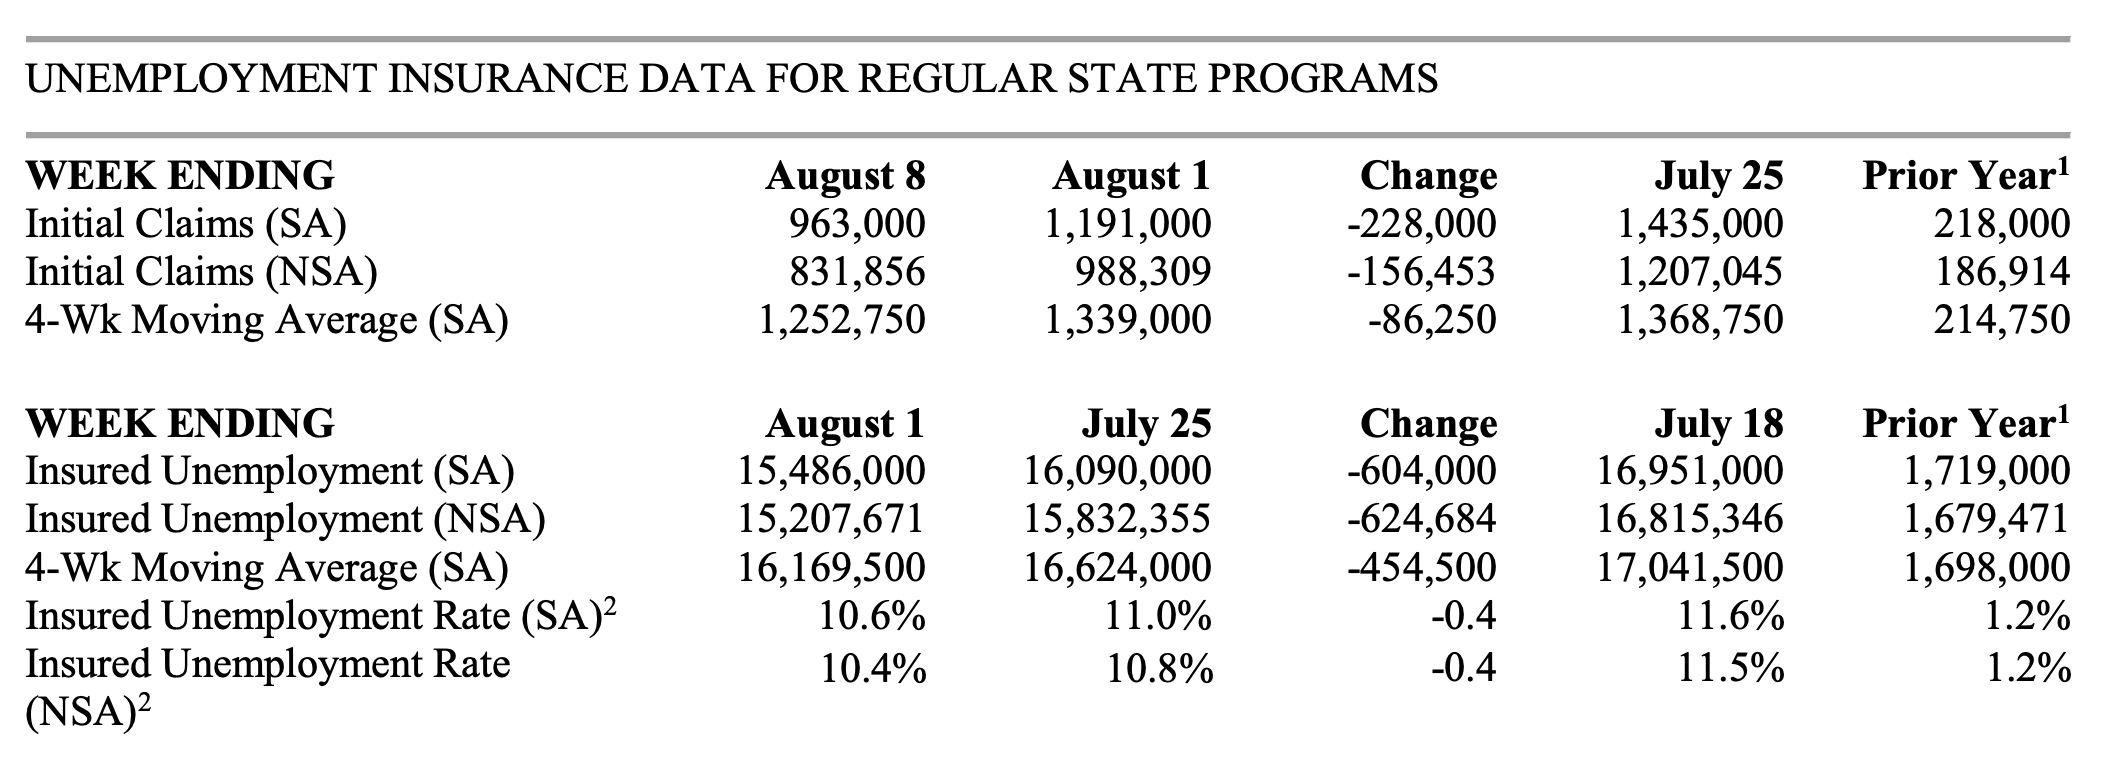 Real Vision - Table: Unemployment Insurance Data for Regular State Programs